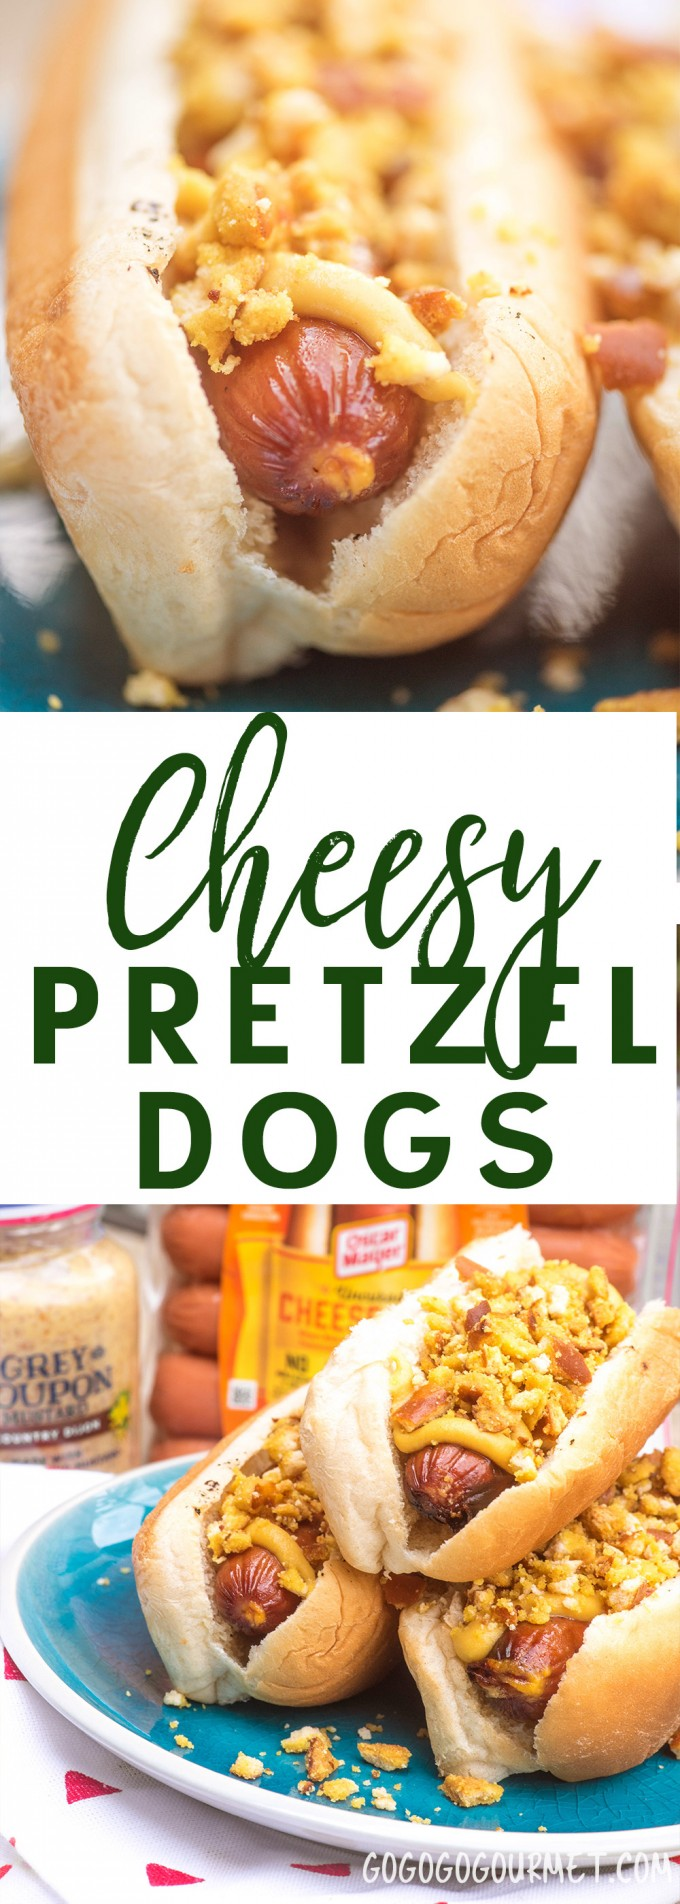 These Cheesy Pretzel Dogs are a fast and easy summer dish that have a surprising burst of flavor, sure to be a hit with kids!